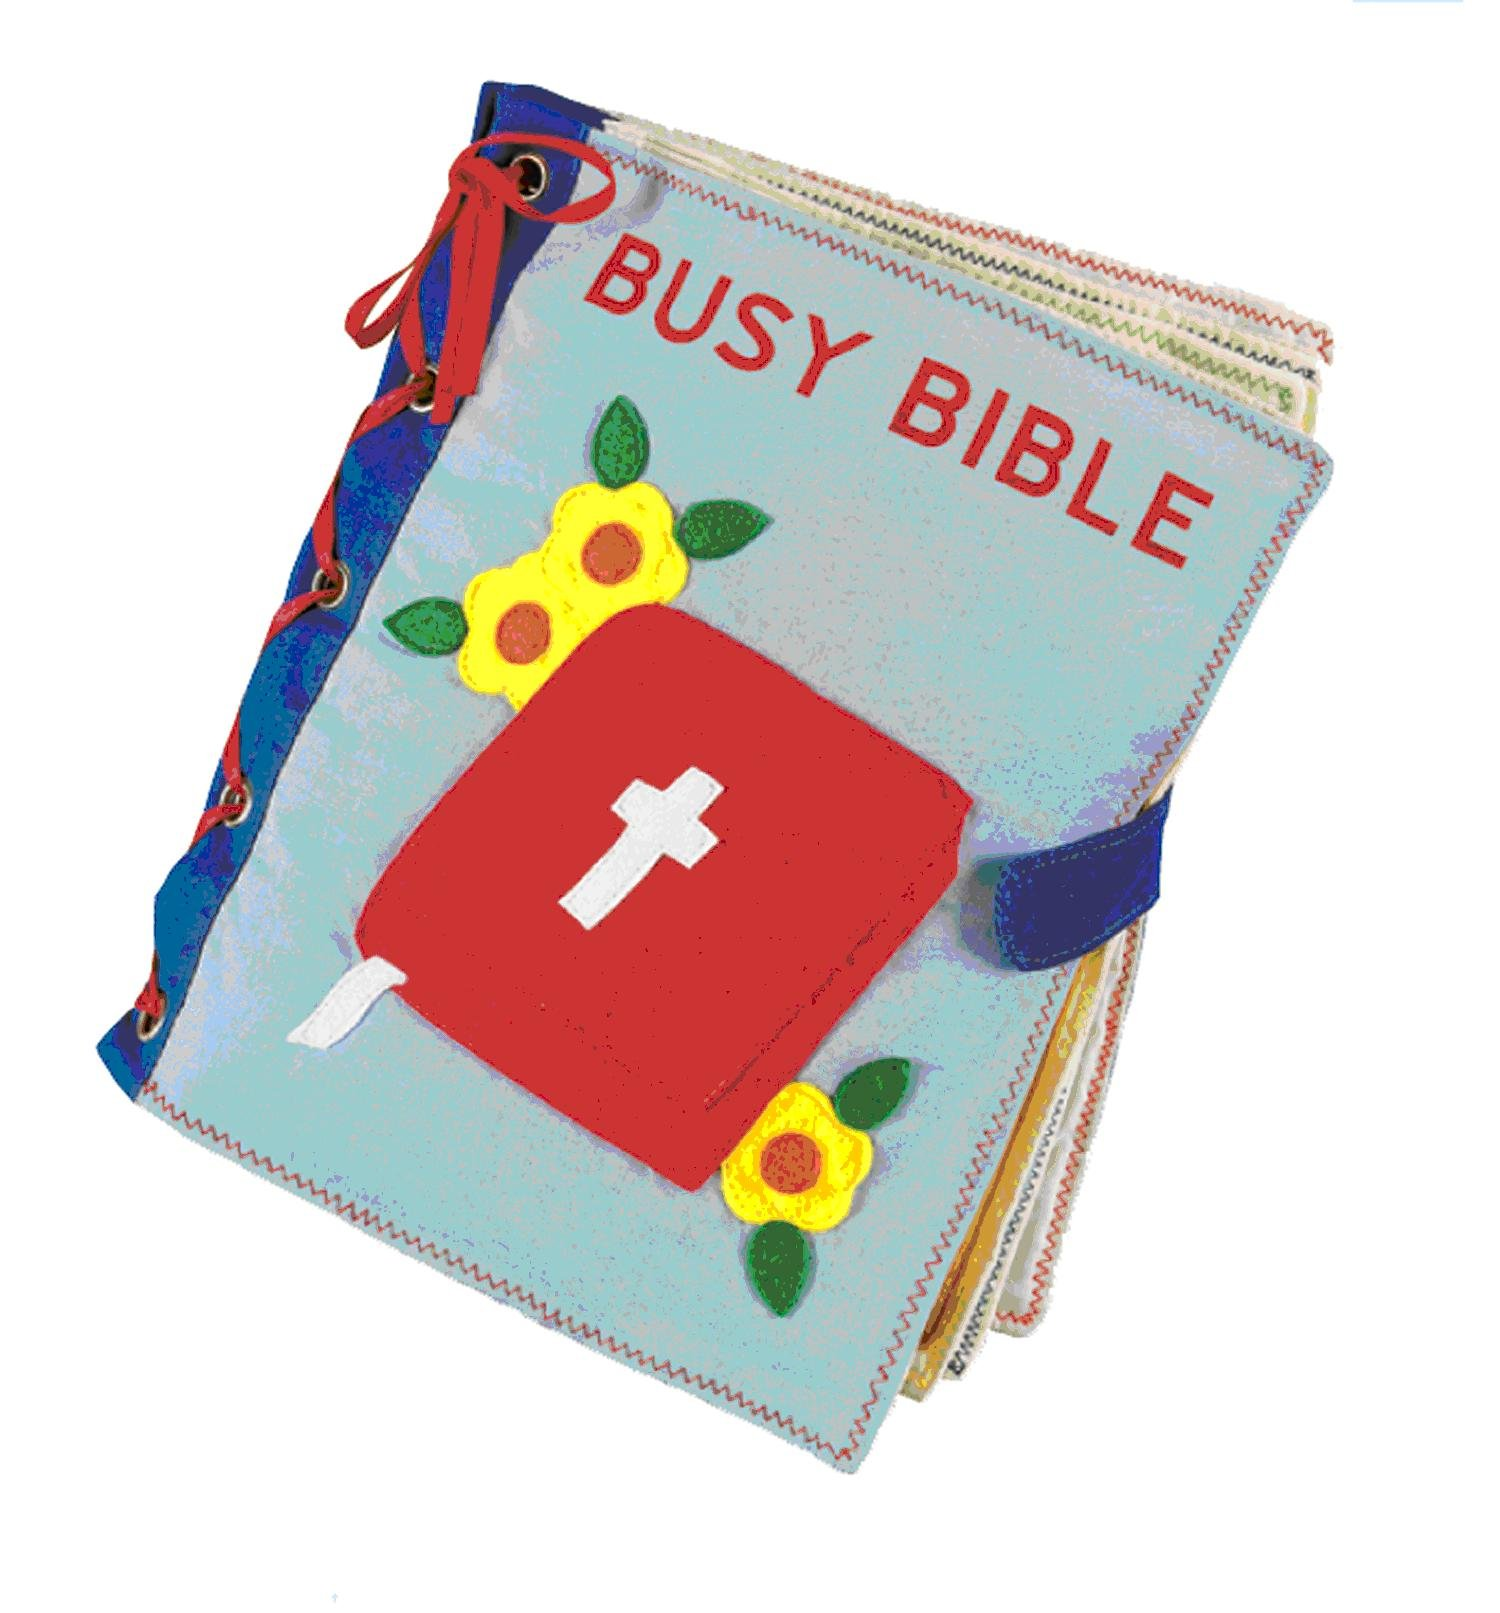 The Busy Bible by BUSY BIBLES INC